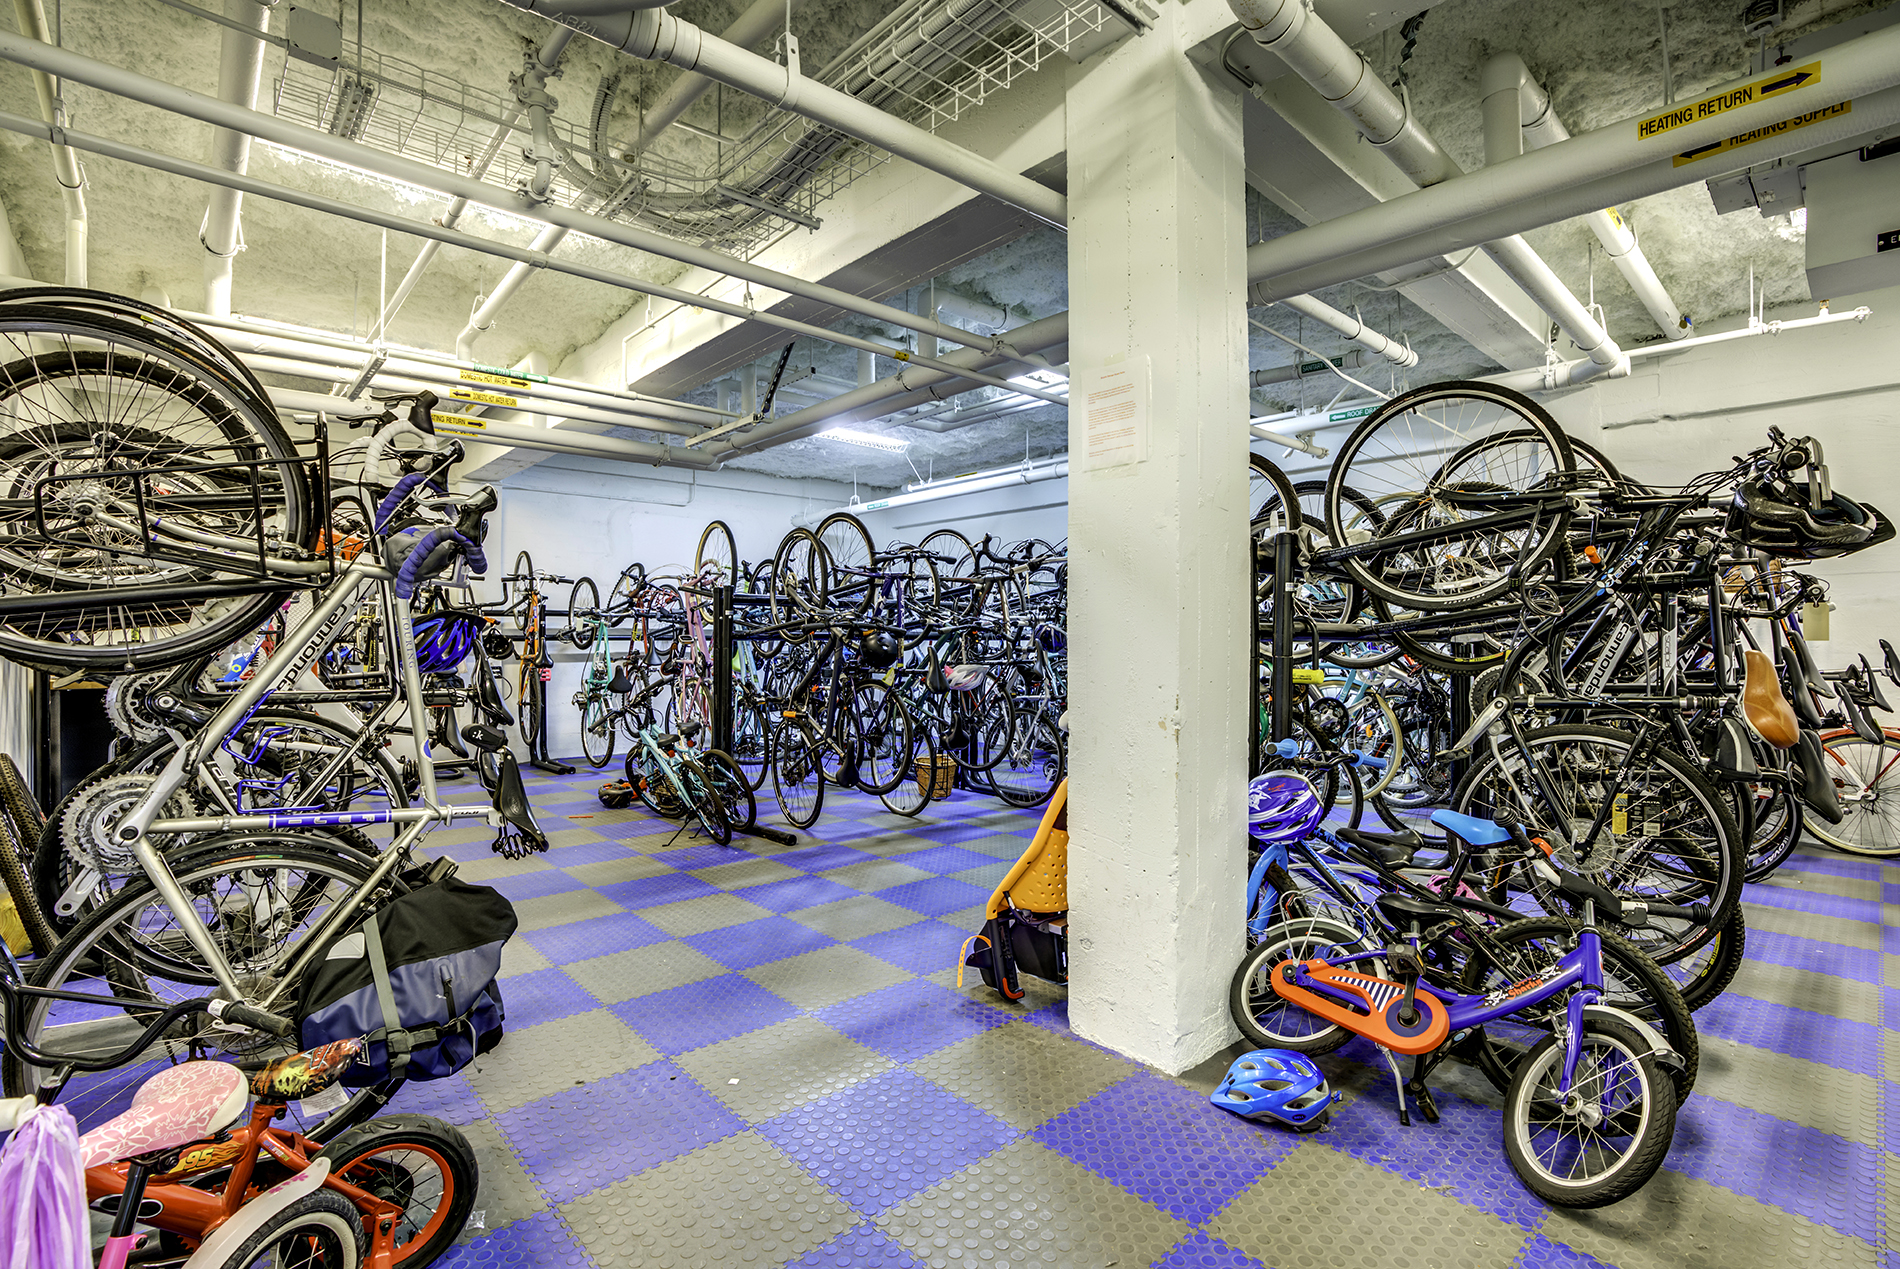 Bike room of an apartment building